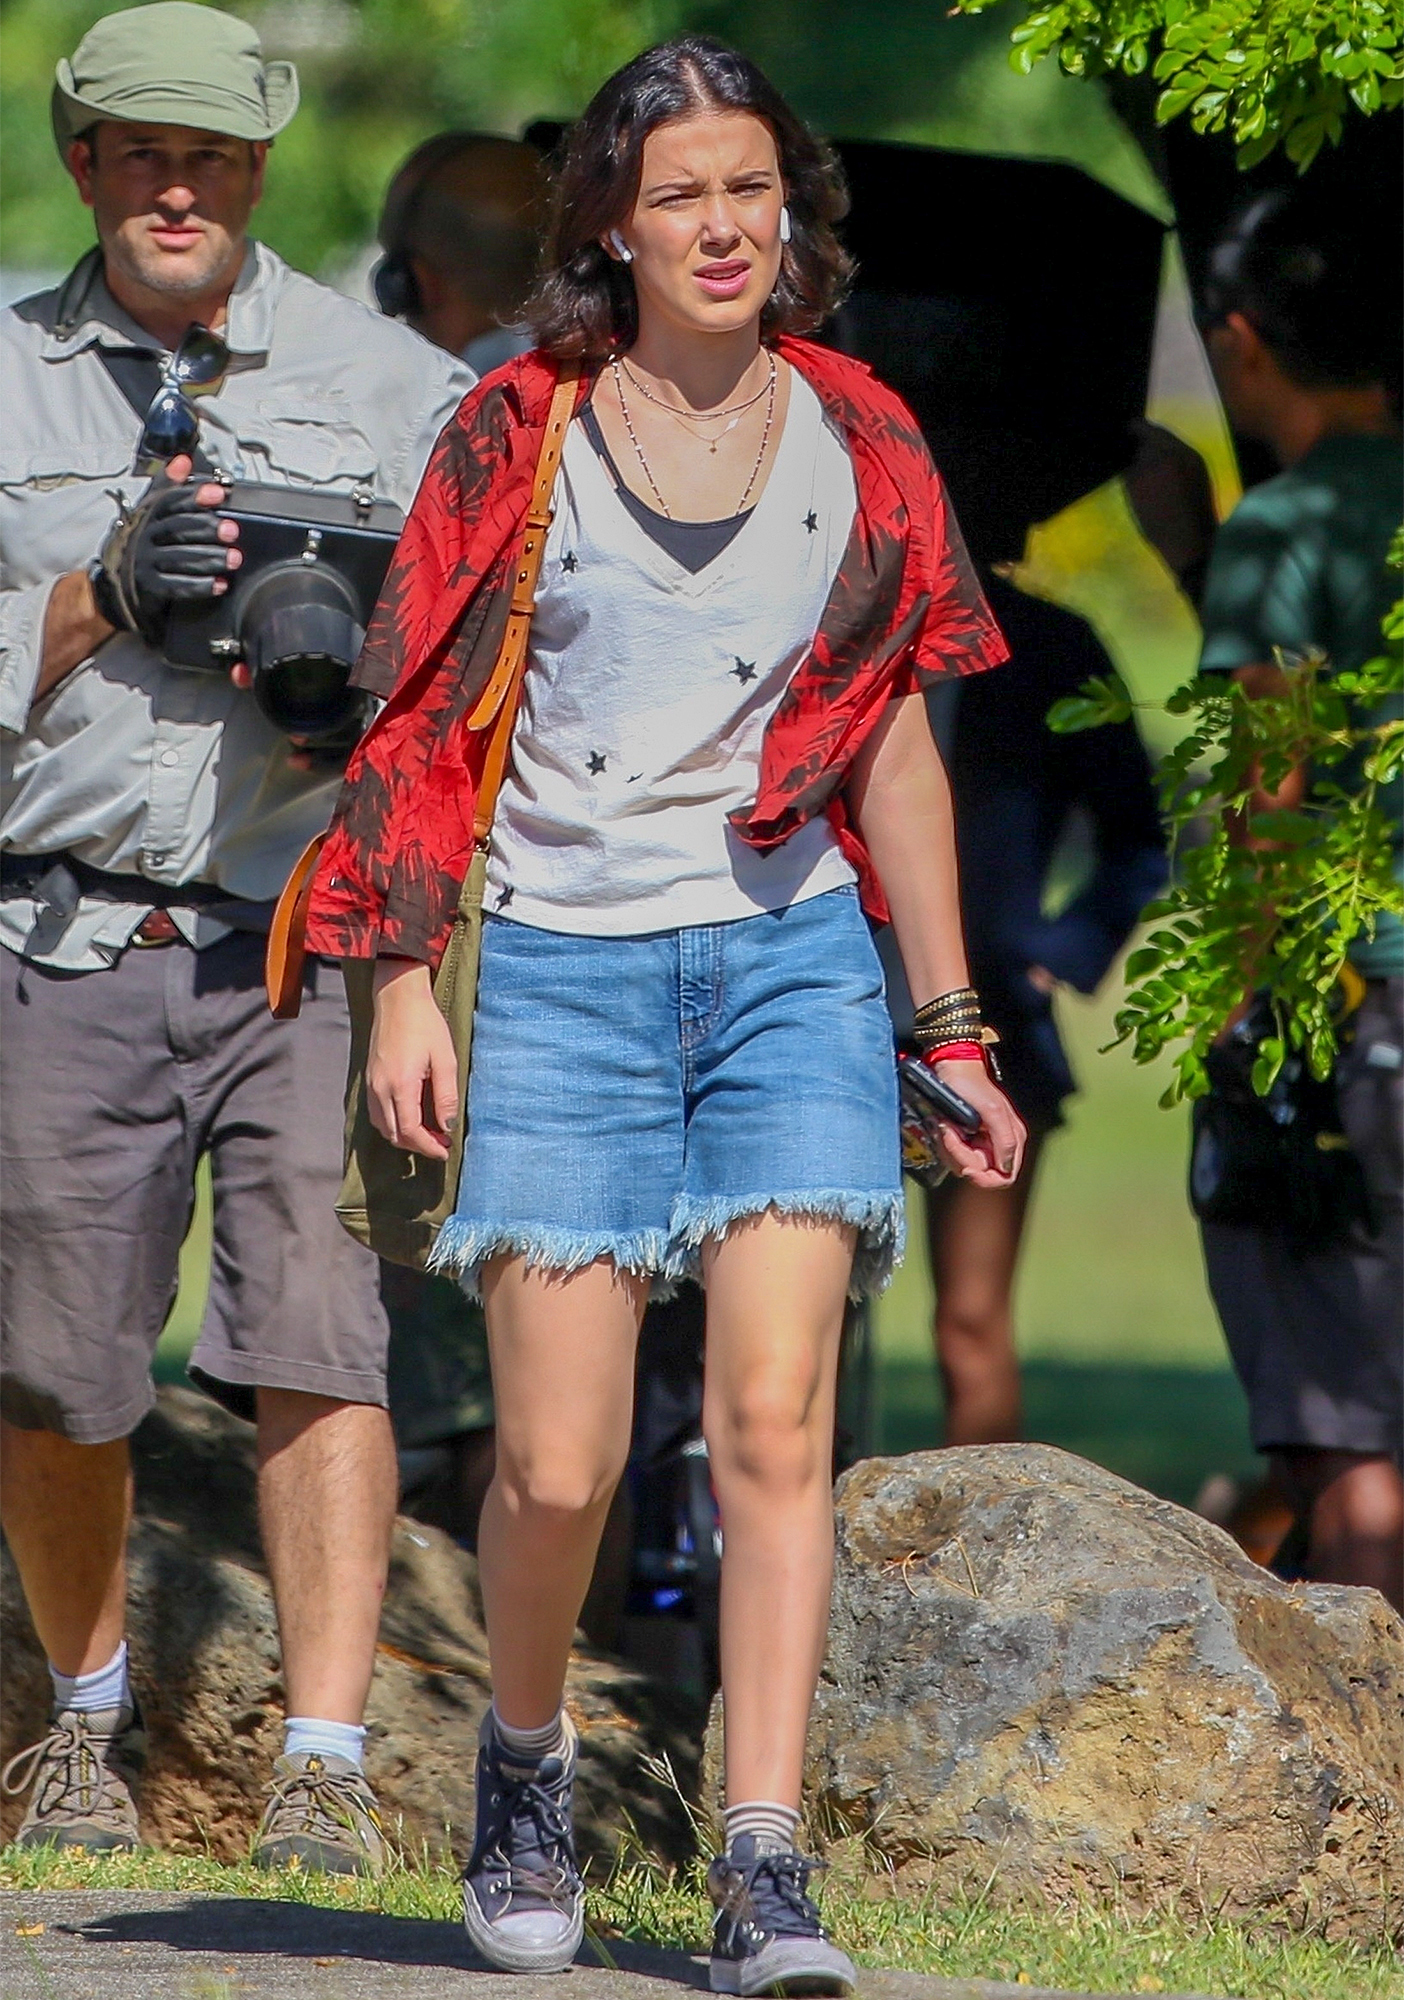 *EXCLUSIVE* First Pictures of Millie Bobby Brown on the set of Godziilla vs Kong, fresh off wrapping up Season 3 of Stranger Things